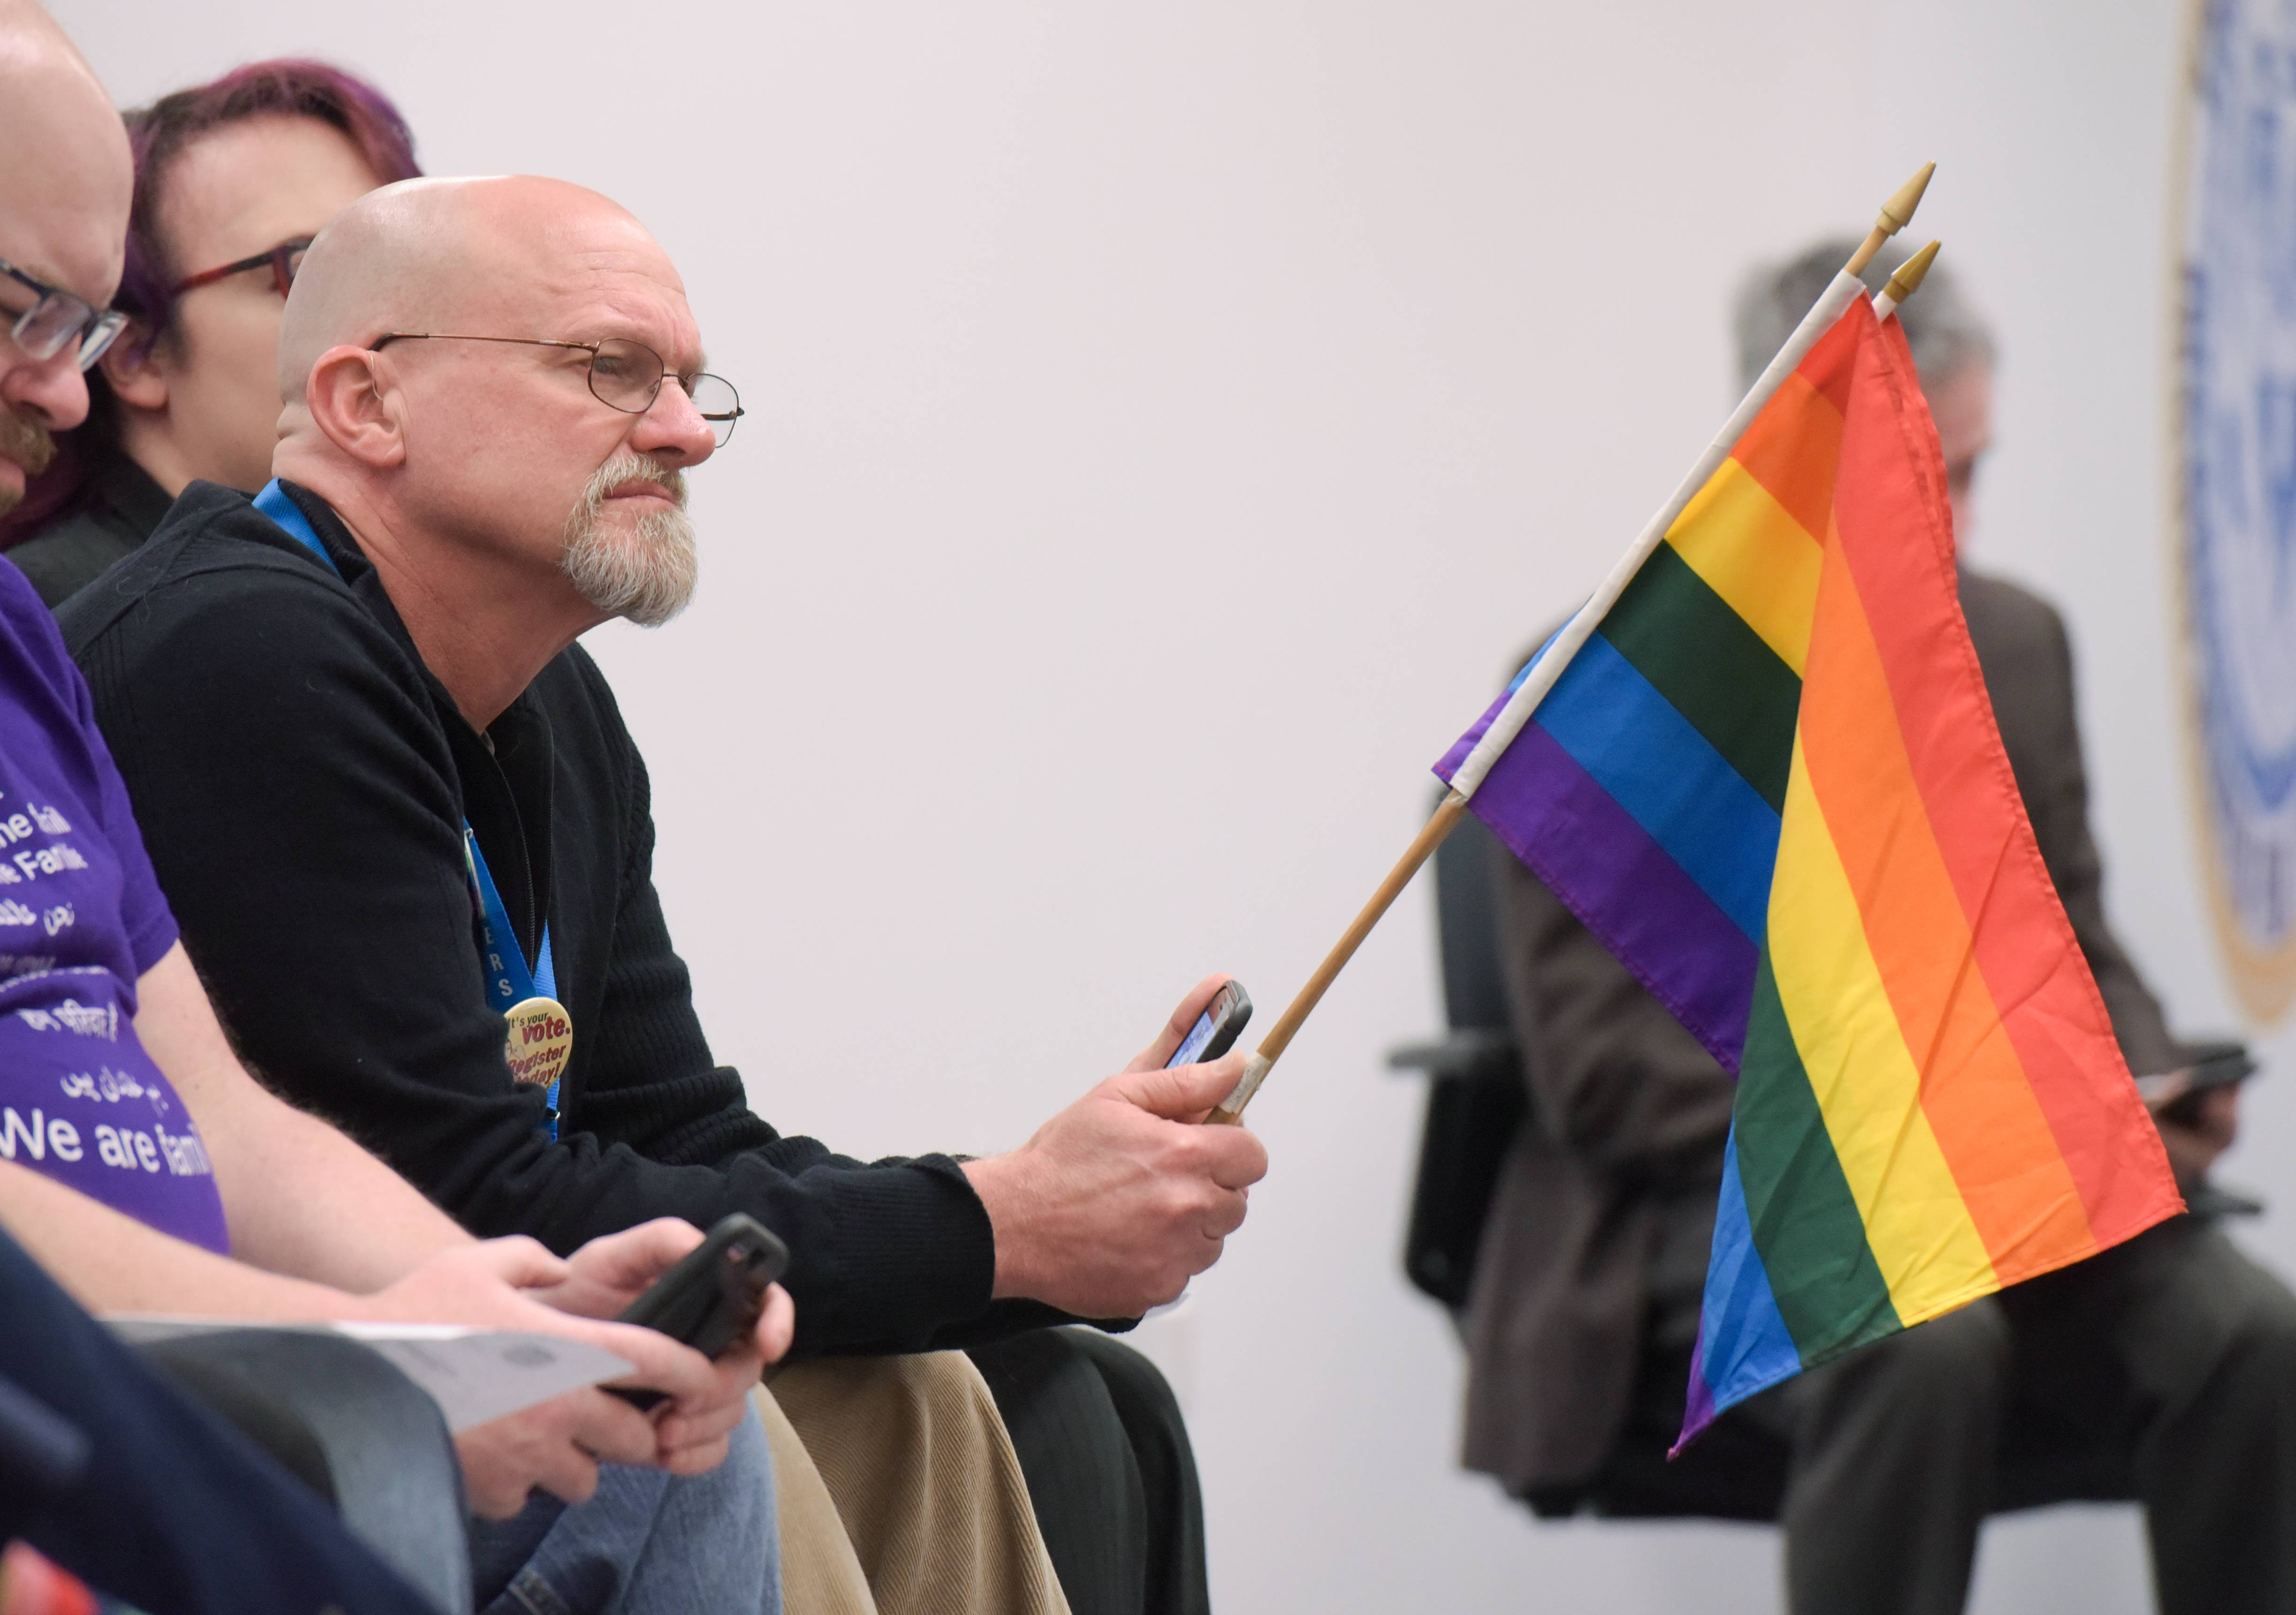 Greg Elsbree of Aurora holds a pride flag Tuesday as he supported the first Aurora Pride Parade. The parade was granted a permit and is set to step off at 1 p.m. Sunday, June 17, in downtown Aurora.